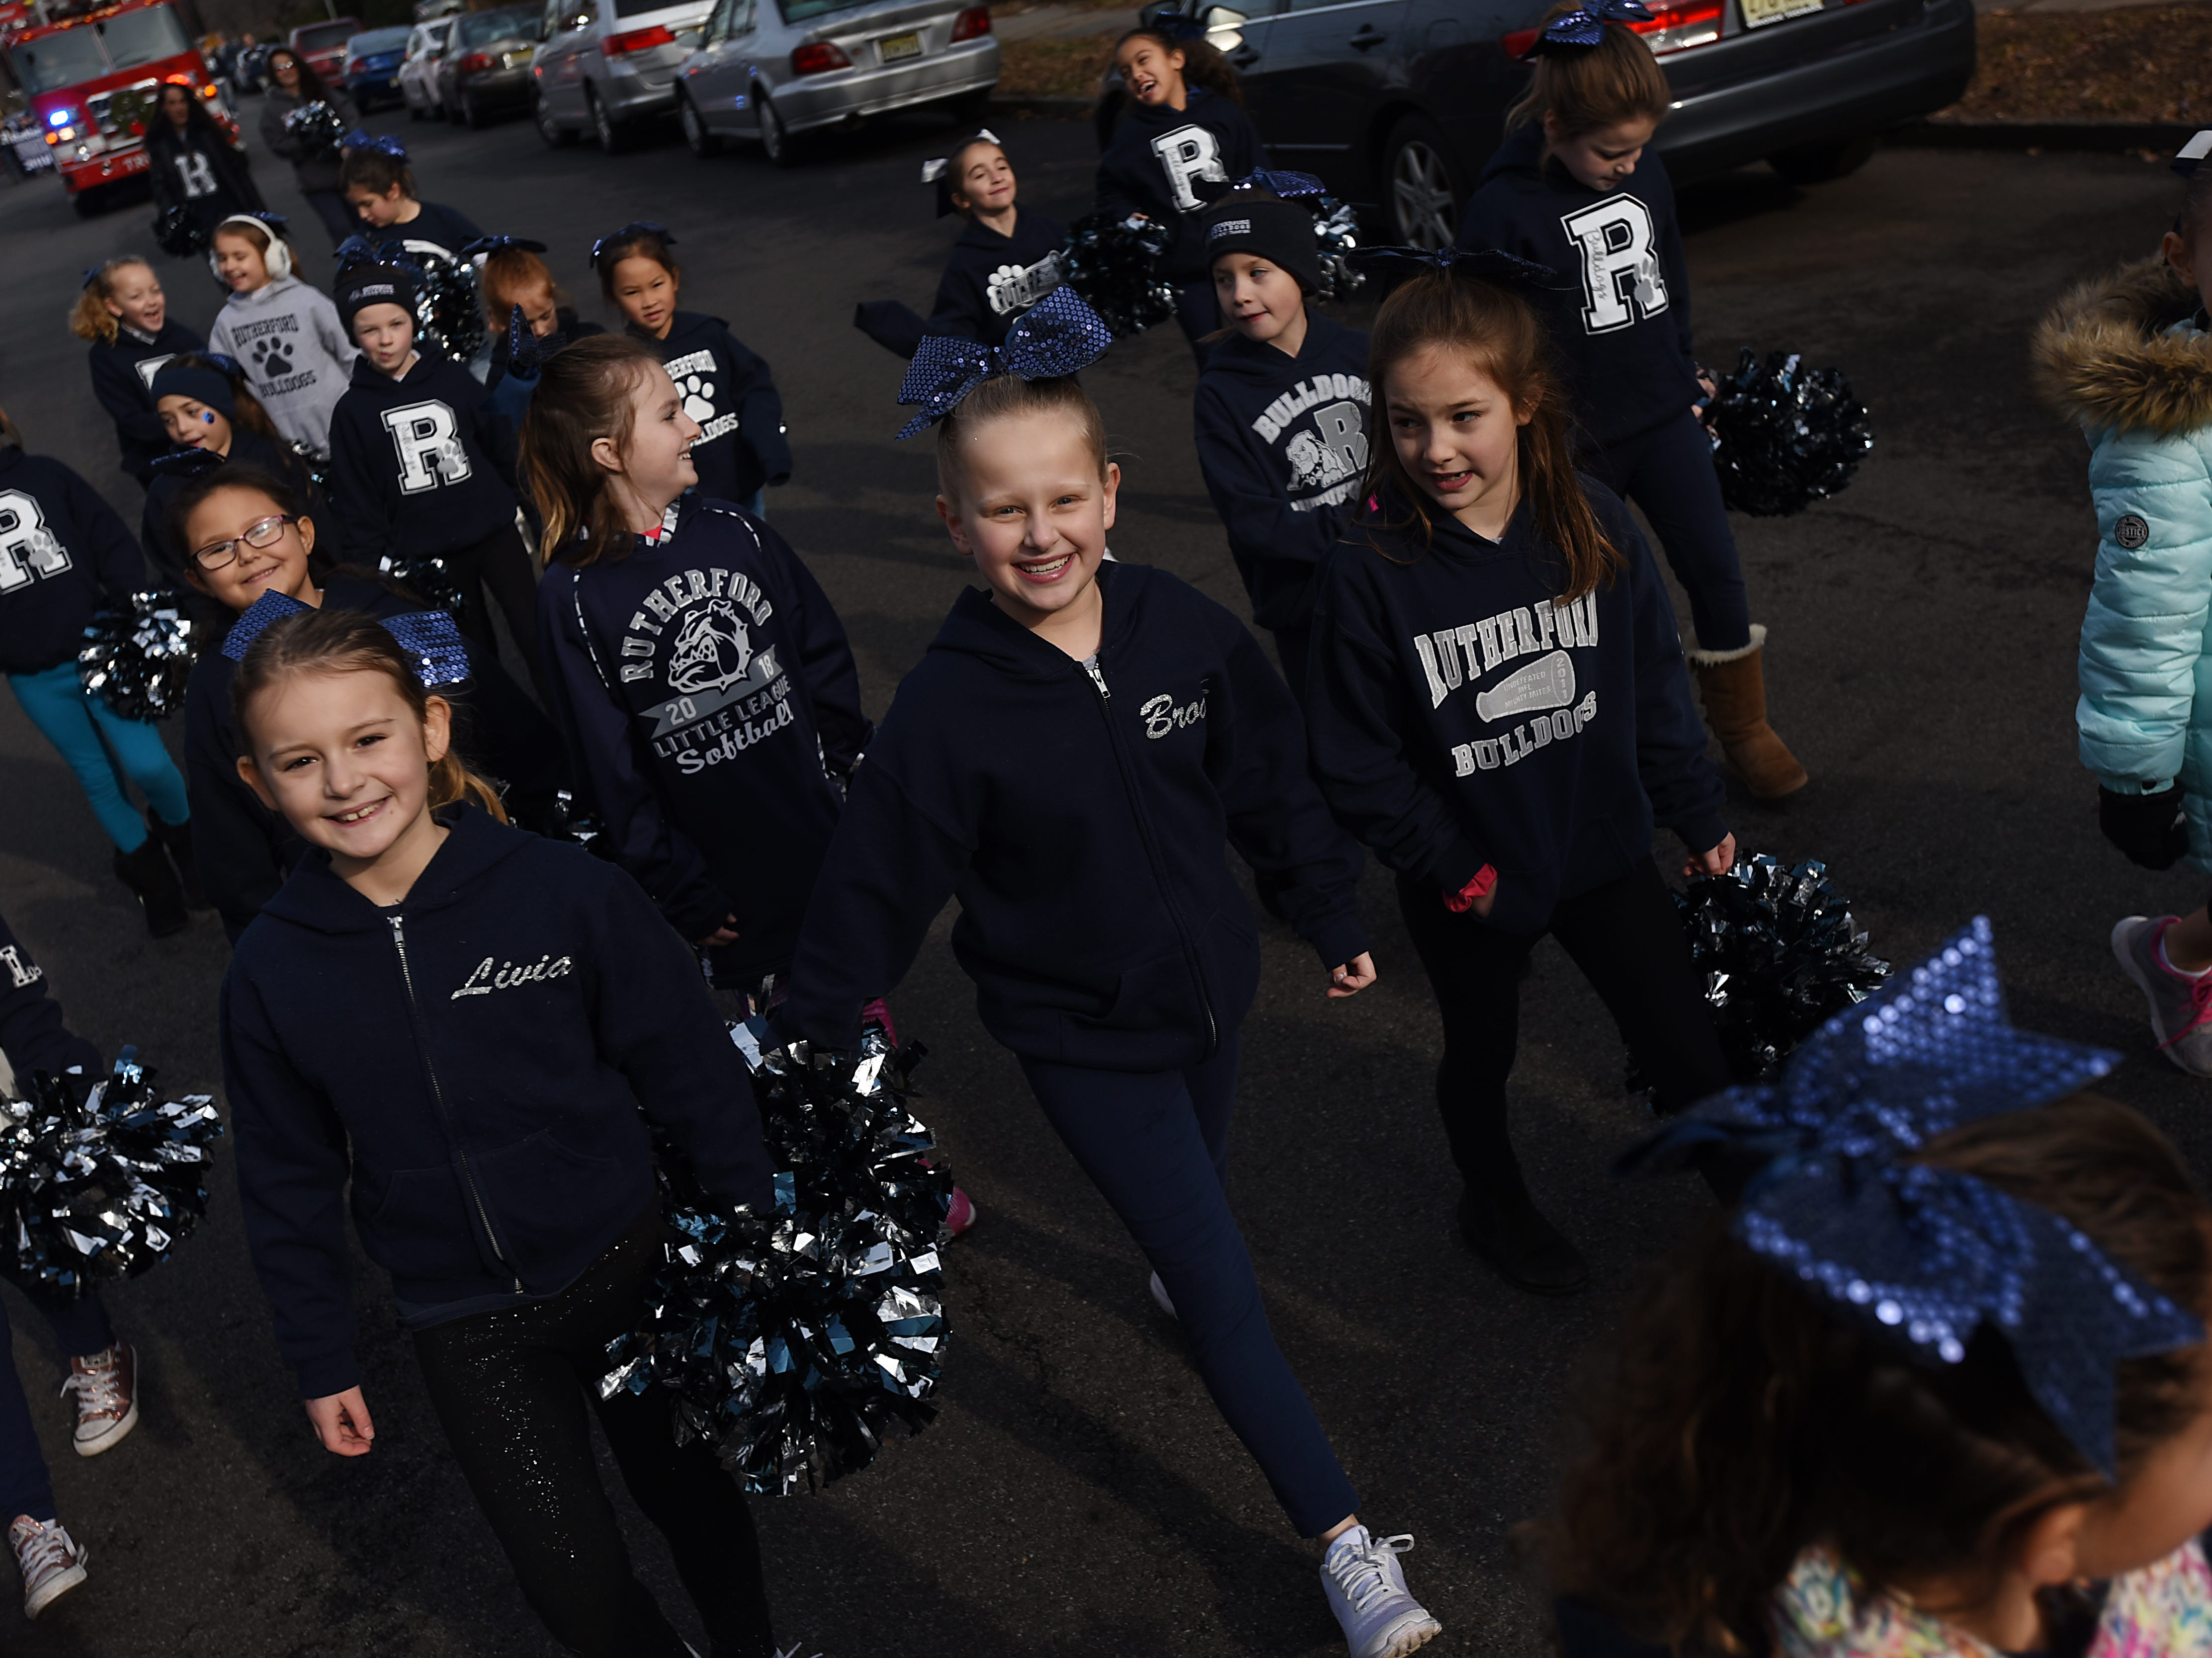 Cheerleaders in the Rutherford Football parade in Rutherford on Saturday December 1, 2018.